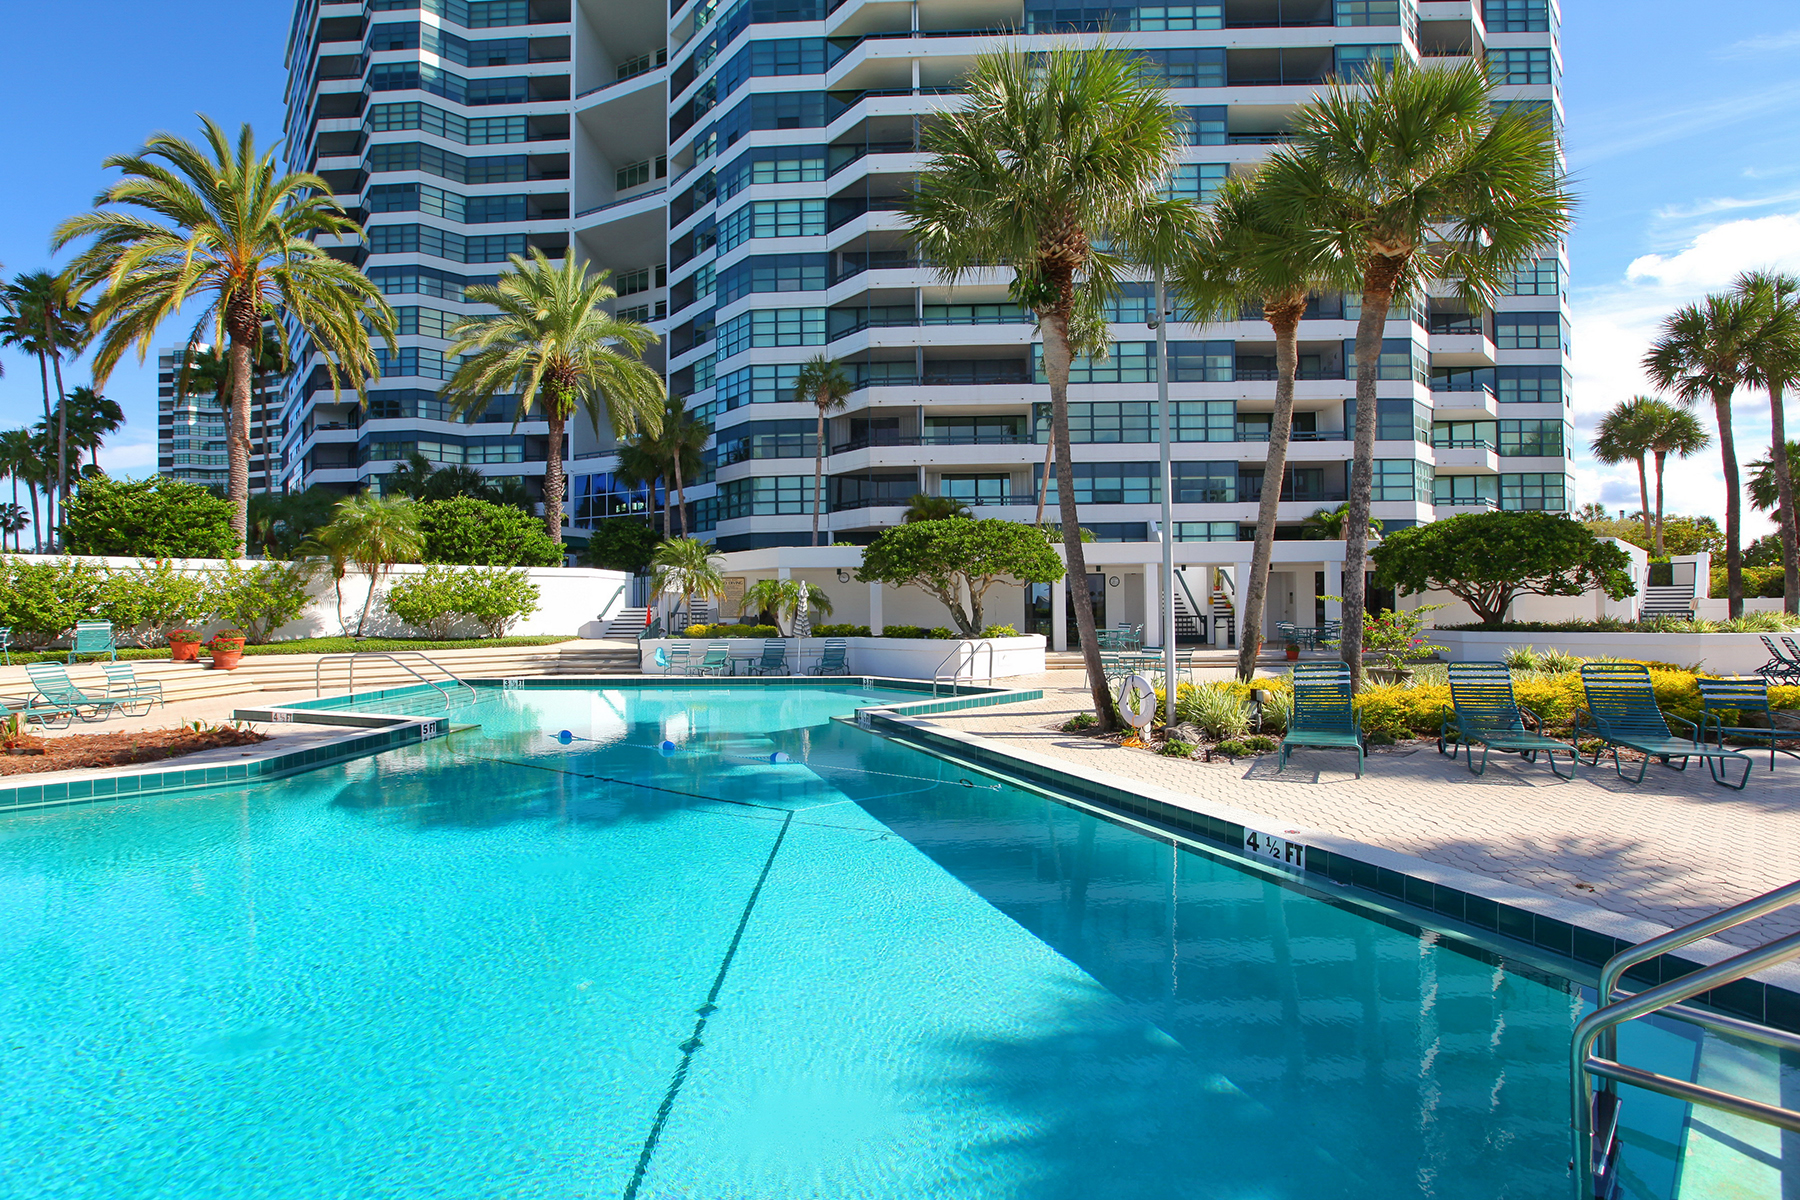 Condominium for Sale at CONDO ON THE BAY 888 Blvd Of The Arts 1901, 1902, Sarasota, Florida, 34236 United States